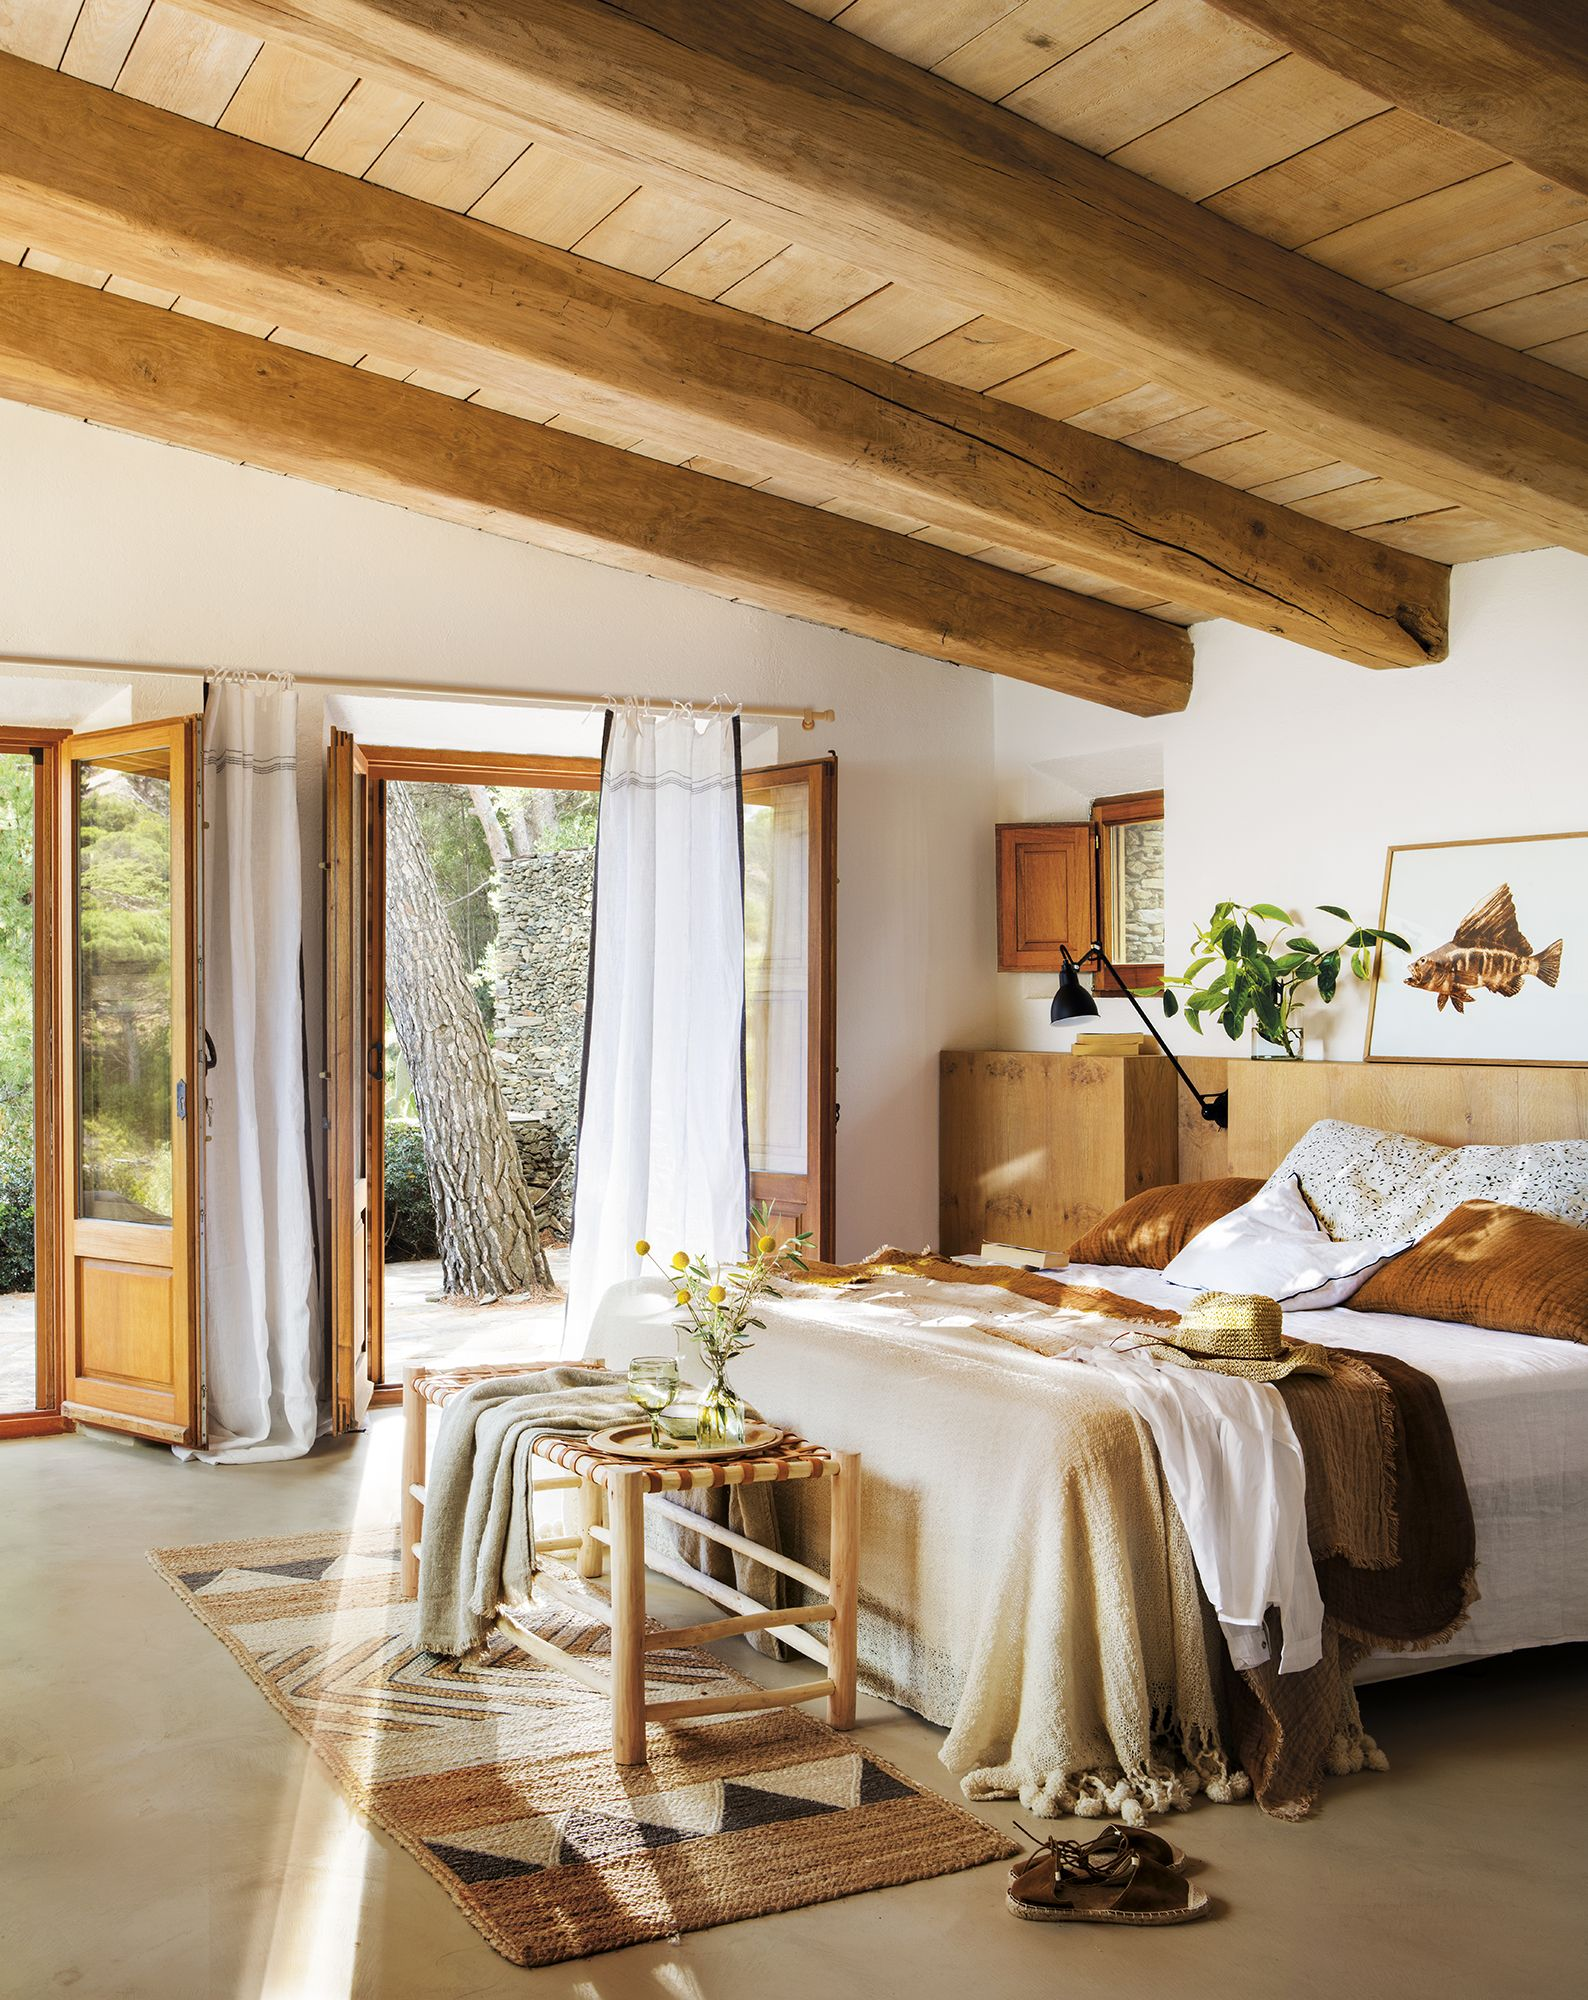 bedroom, brown floor, white wall, wooden headboard, white bed, wooen bench, wooden ceiling, wooden beams, black sconce, patterned rug